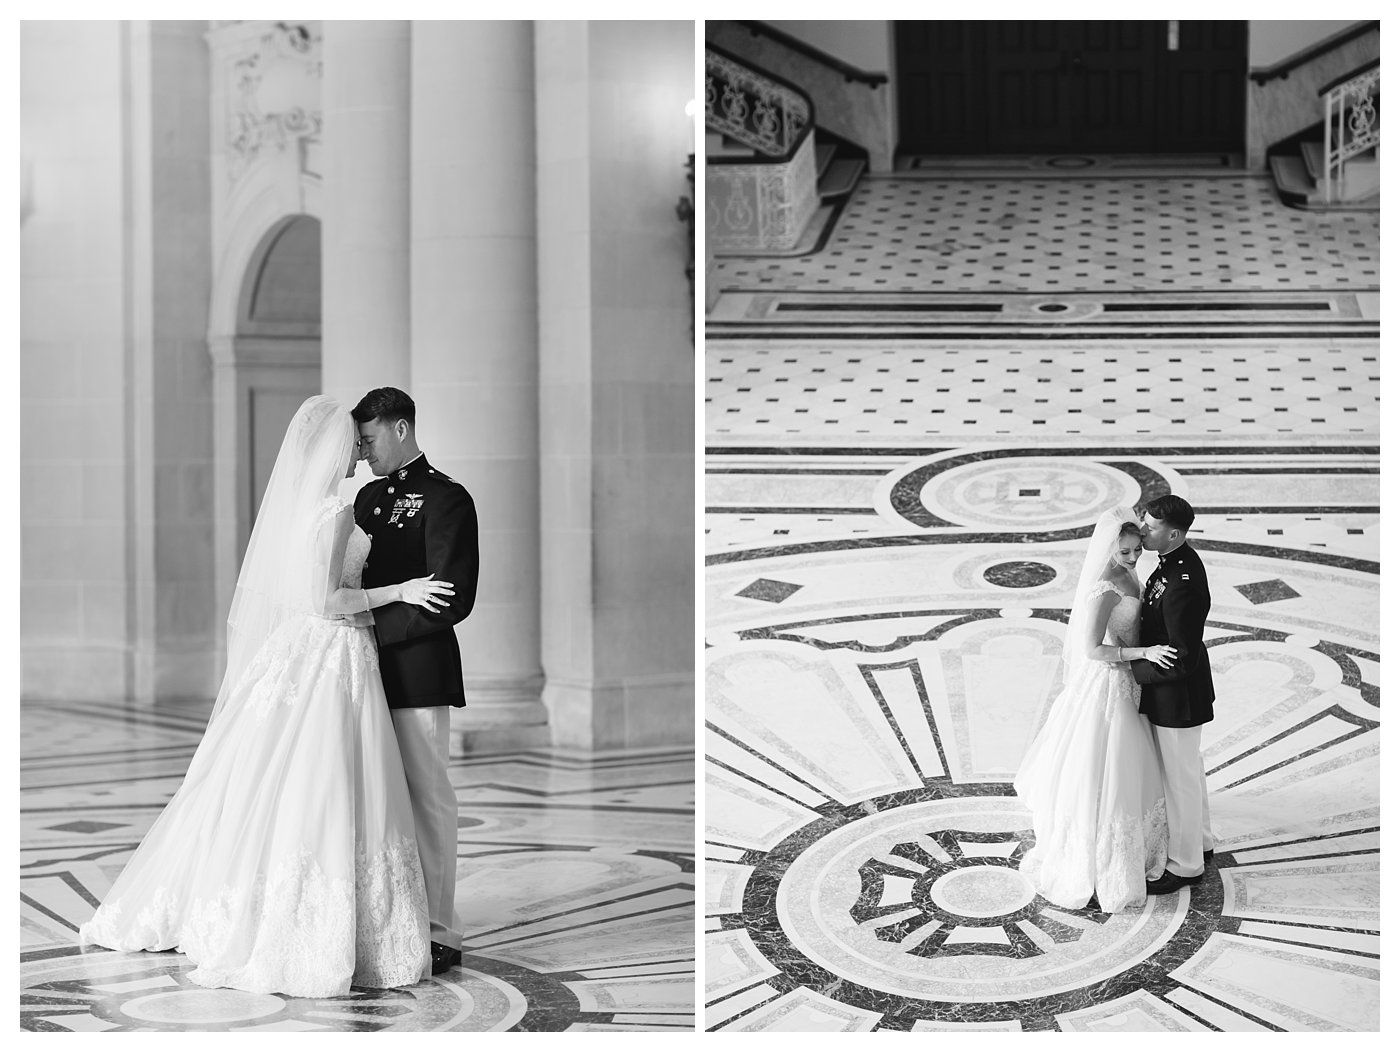 Bride and Groom Portraits at the United States Naval Academy by Amanda and Grady Photography